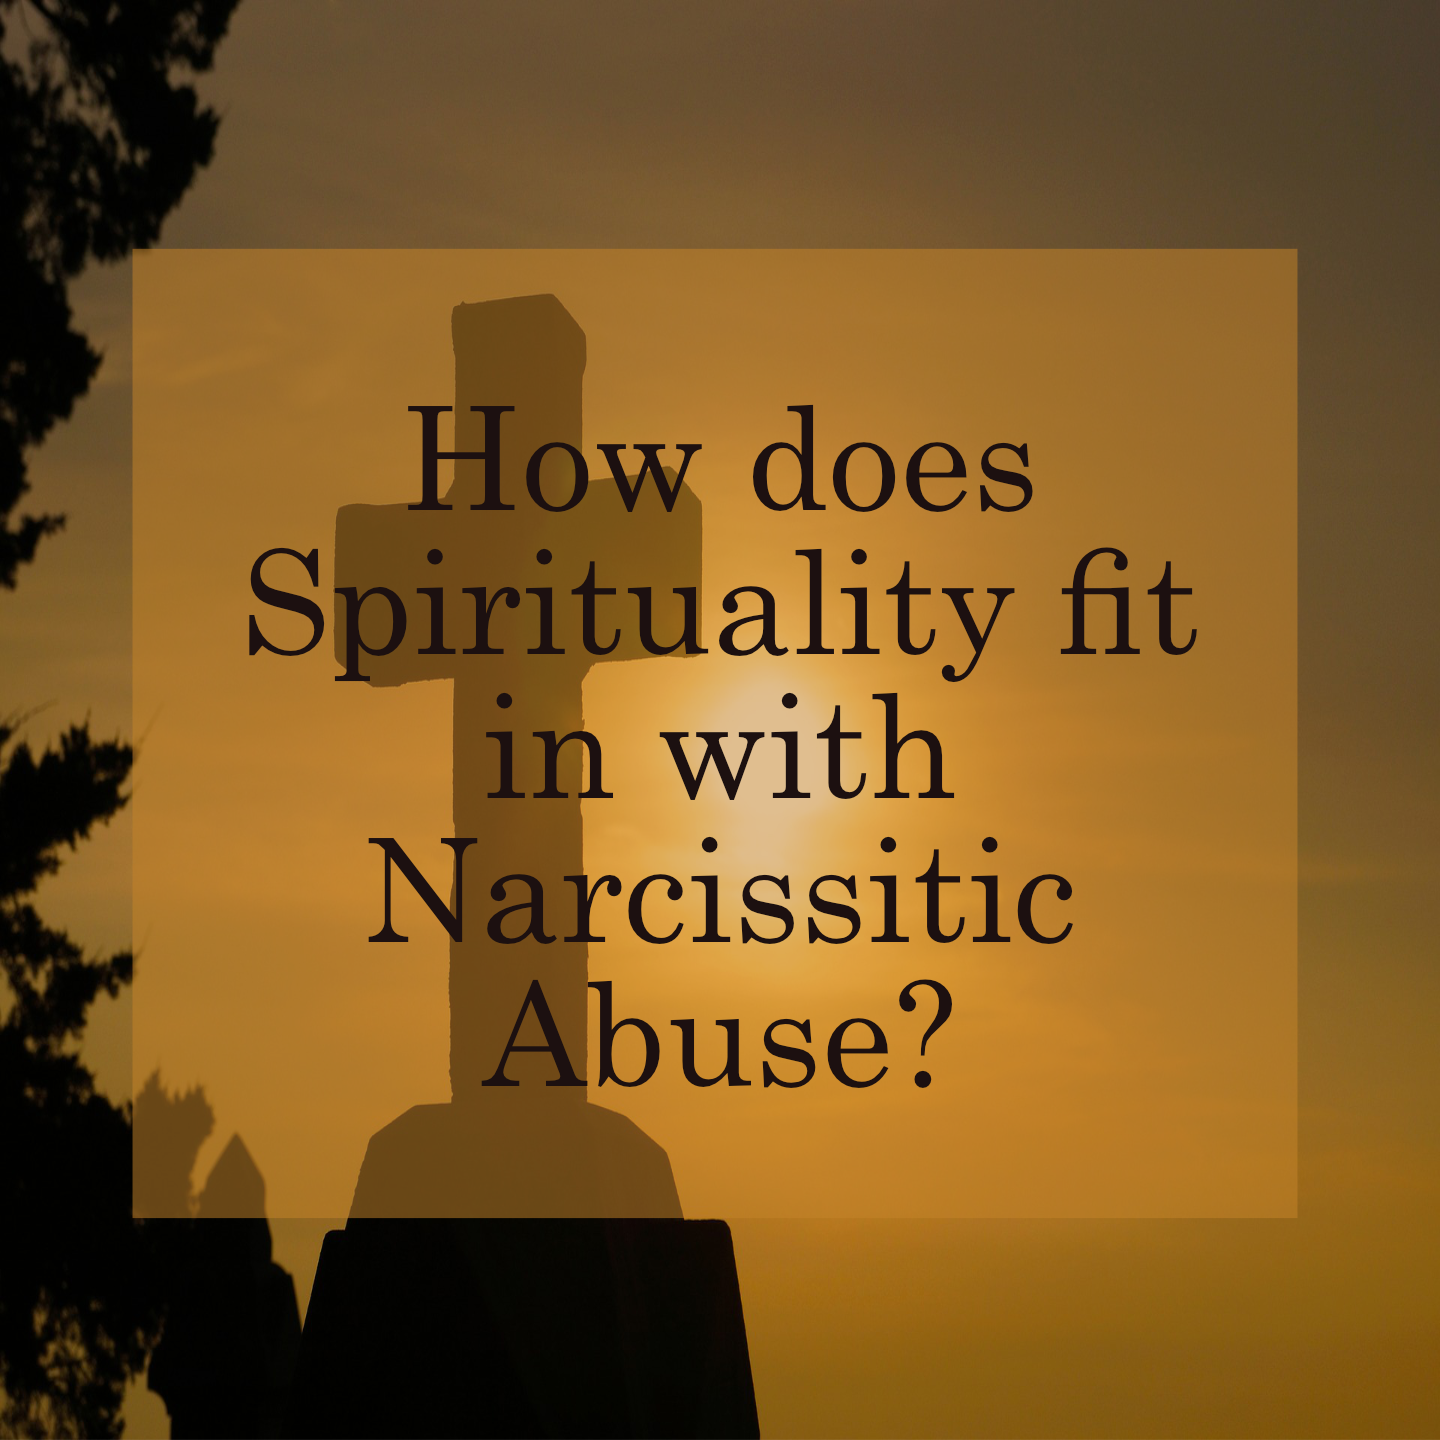 How does Spirituality fit in with Narcissistic Abuse?